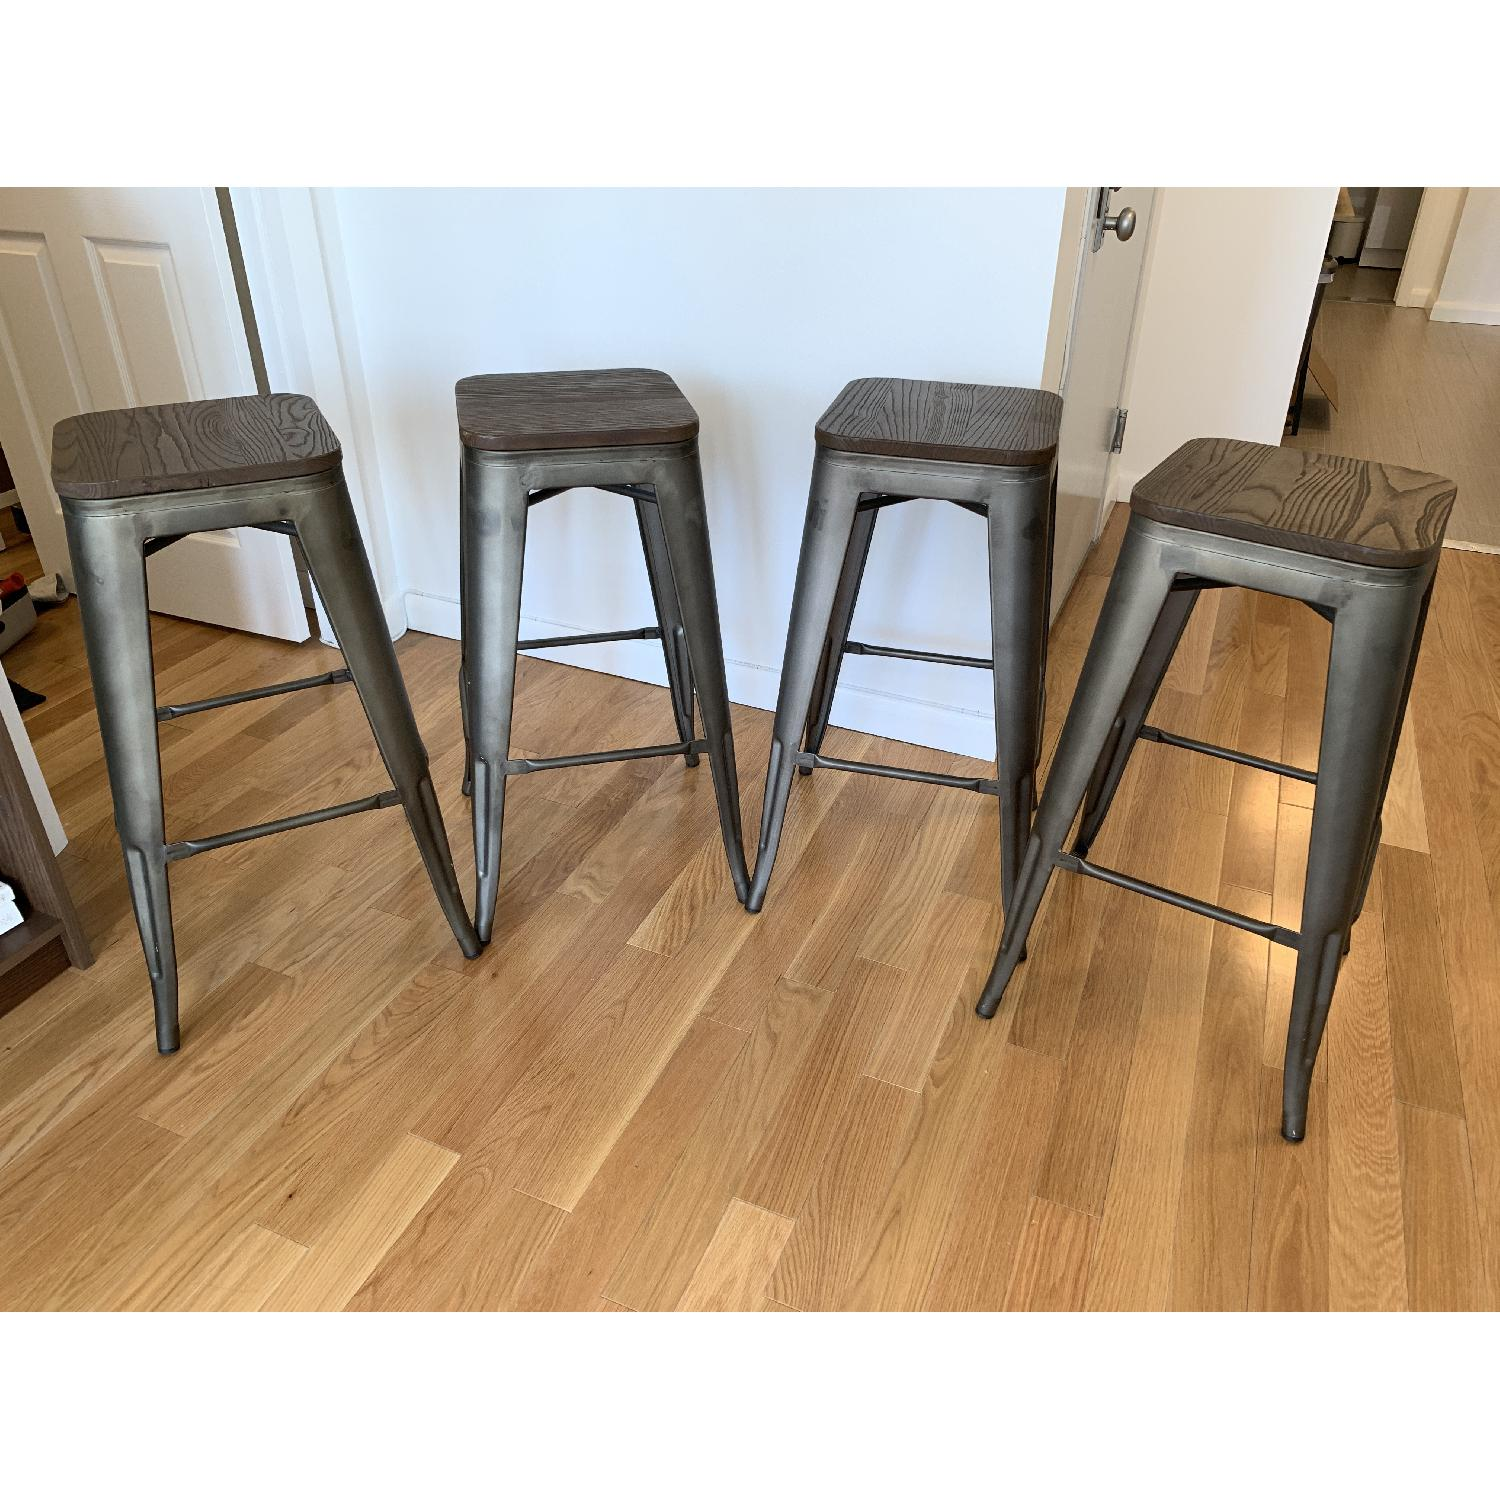 BTExpert Industrial Rustic Metal Stools w/ Wood Top - image-1